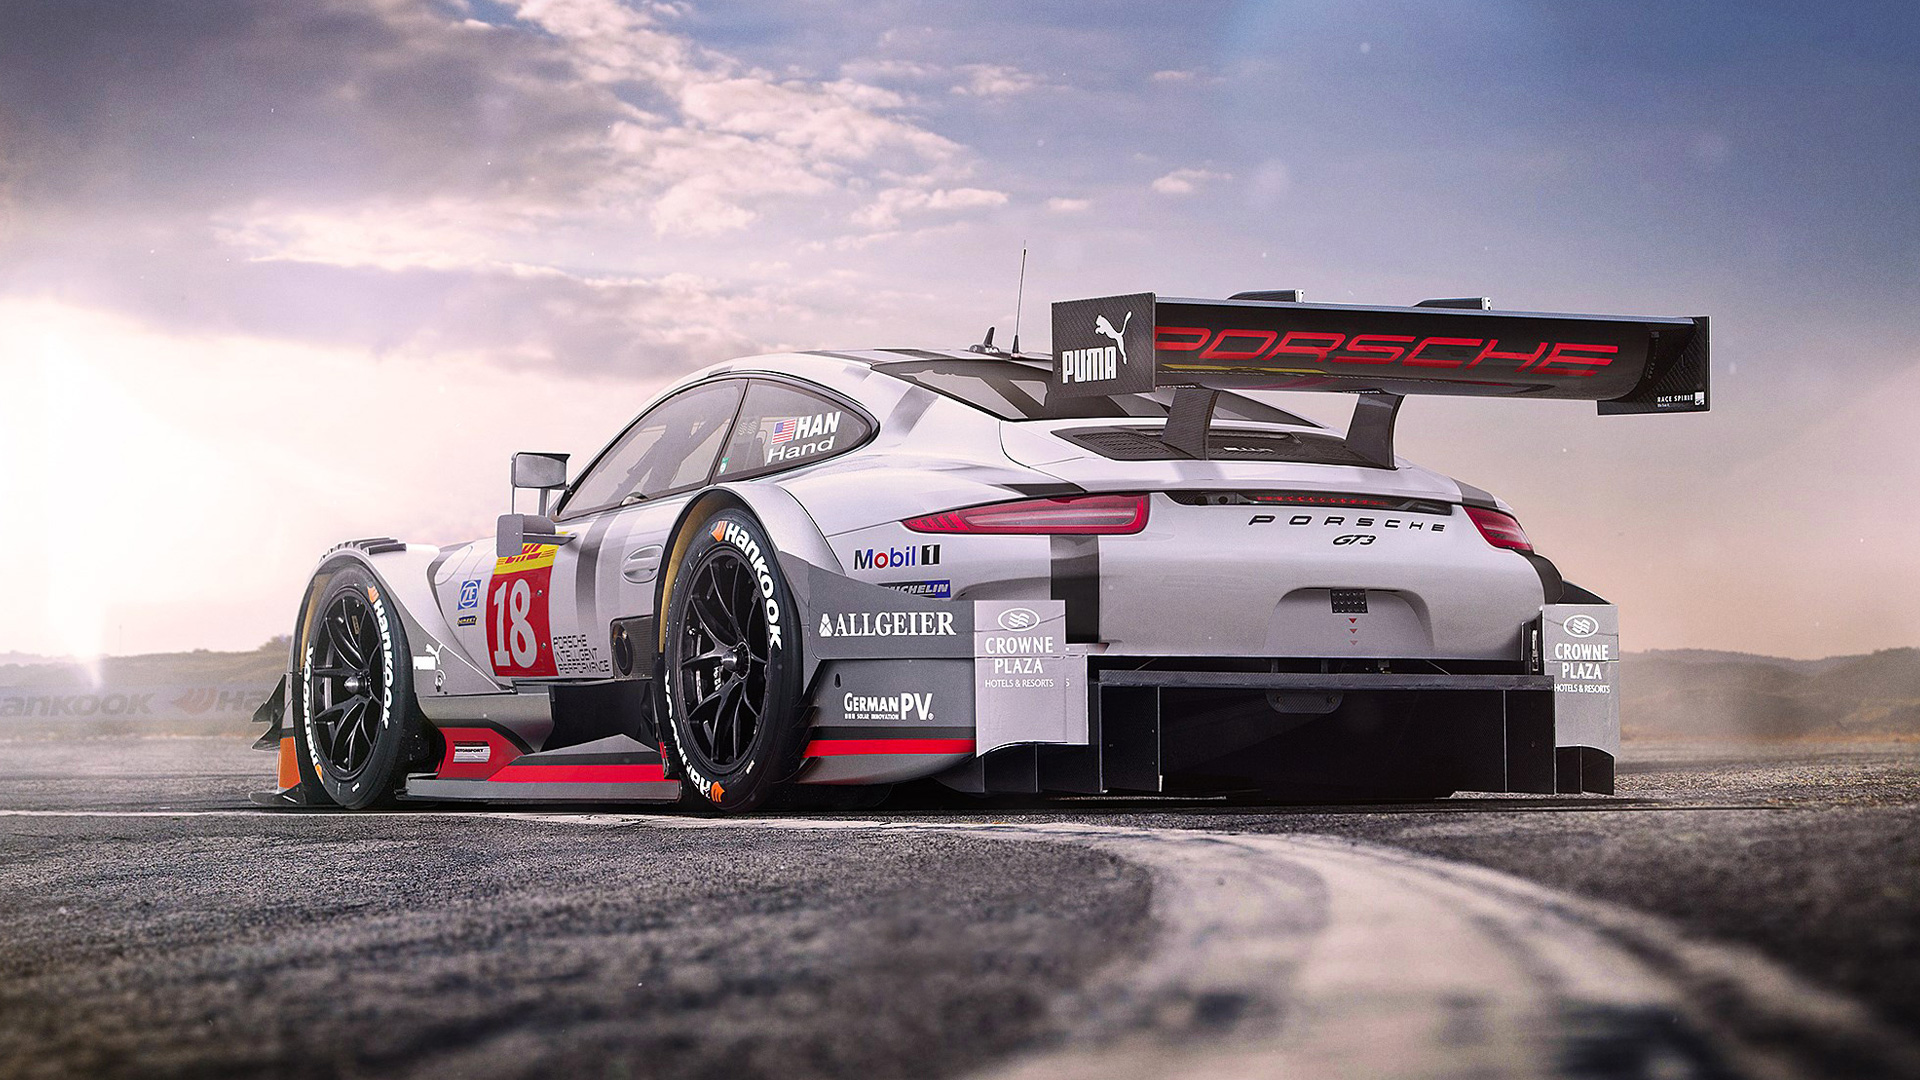 Cars Porsche 911 GT3 R Race Car 2010 Free Desktop Wallpaper s